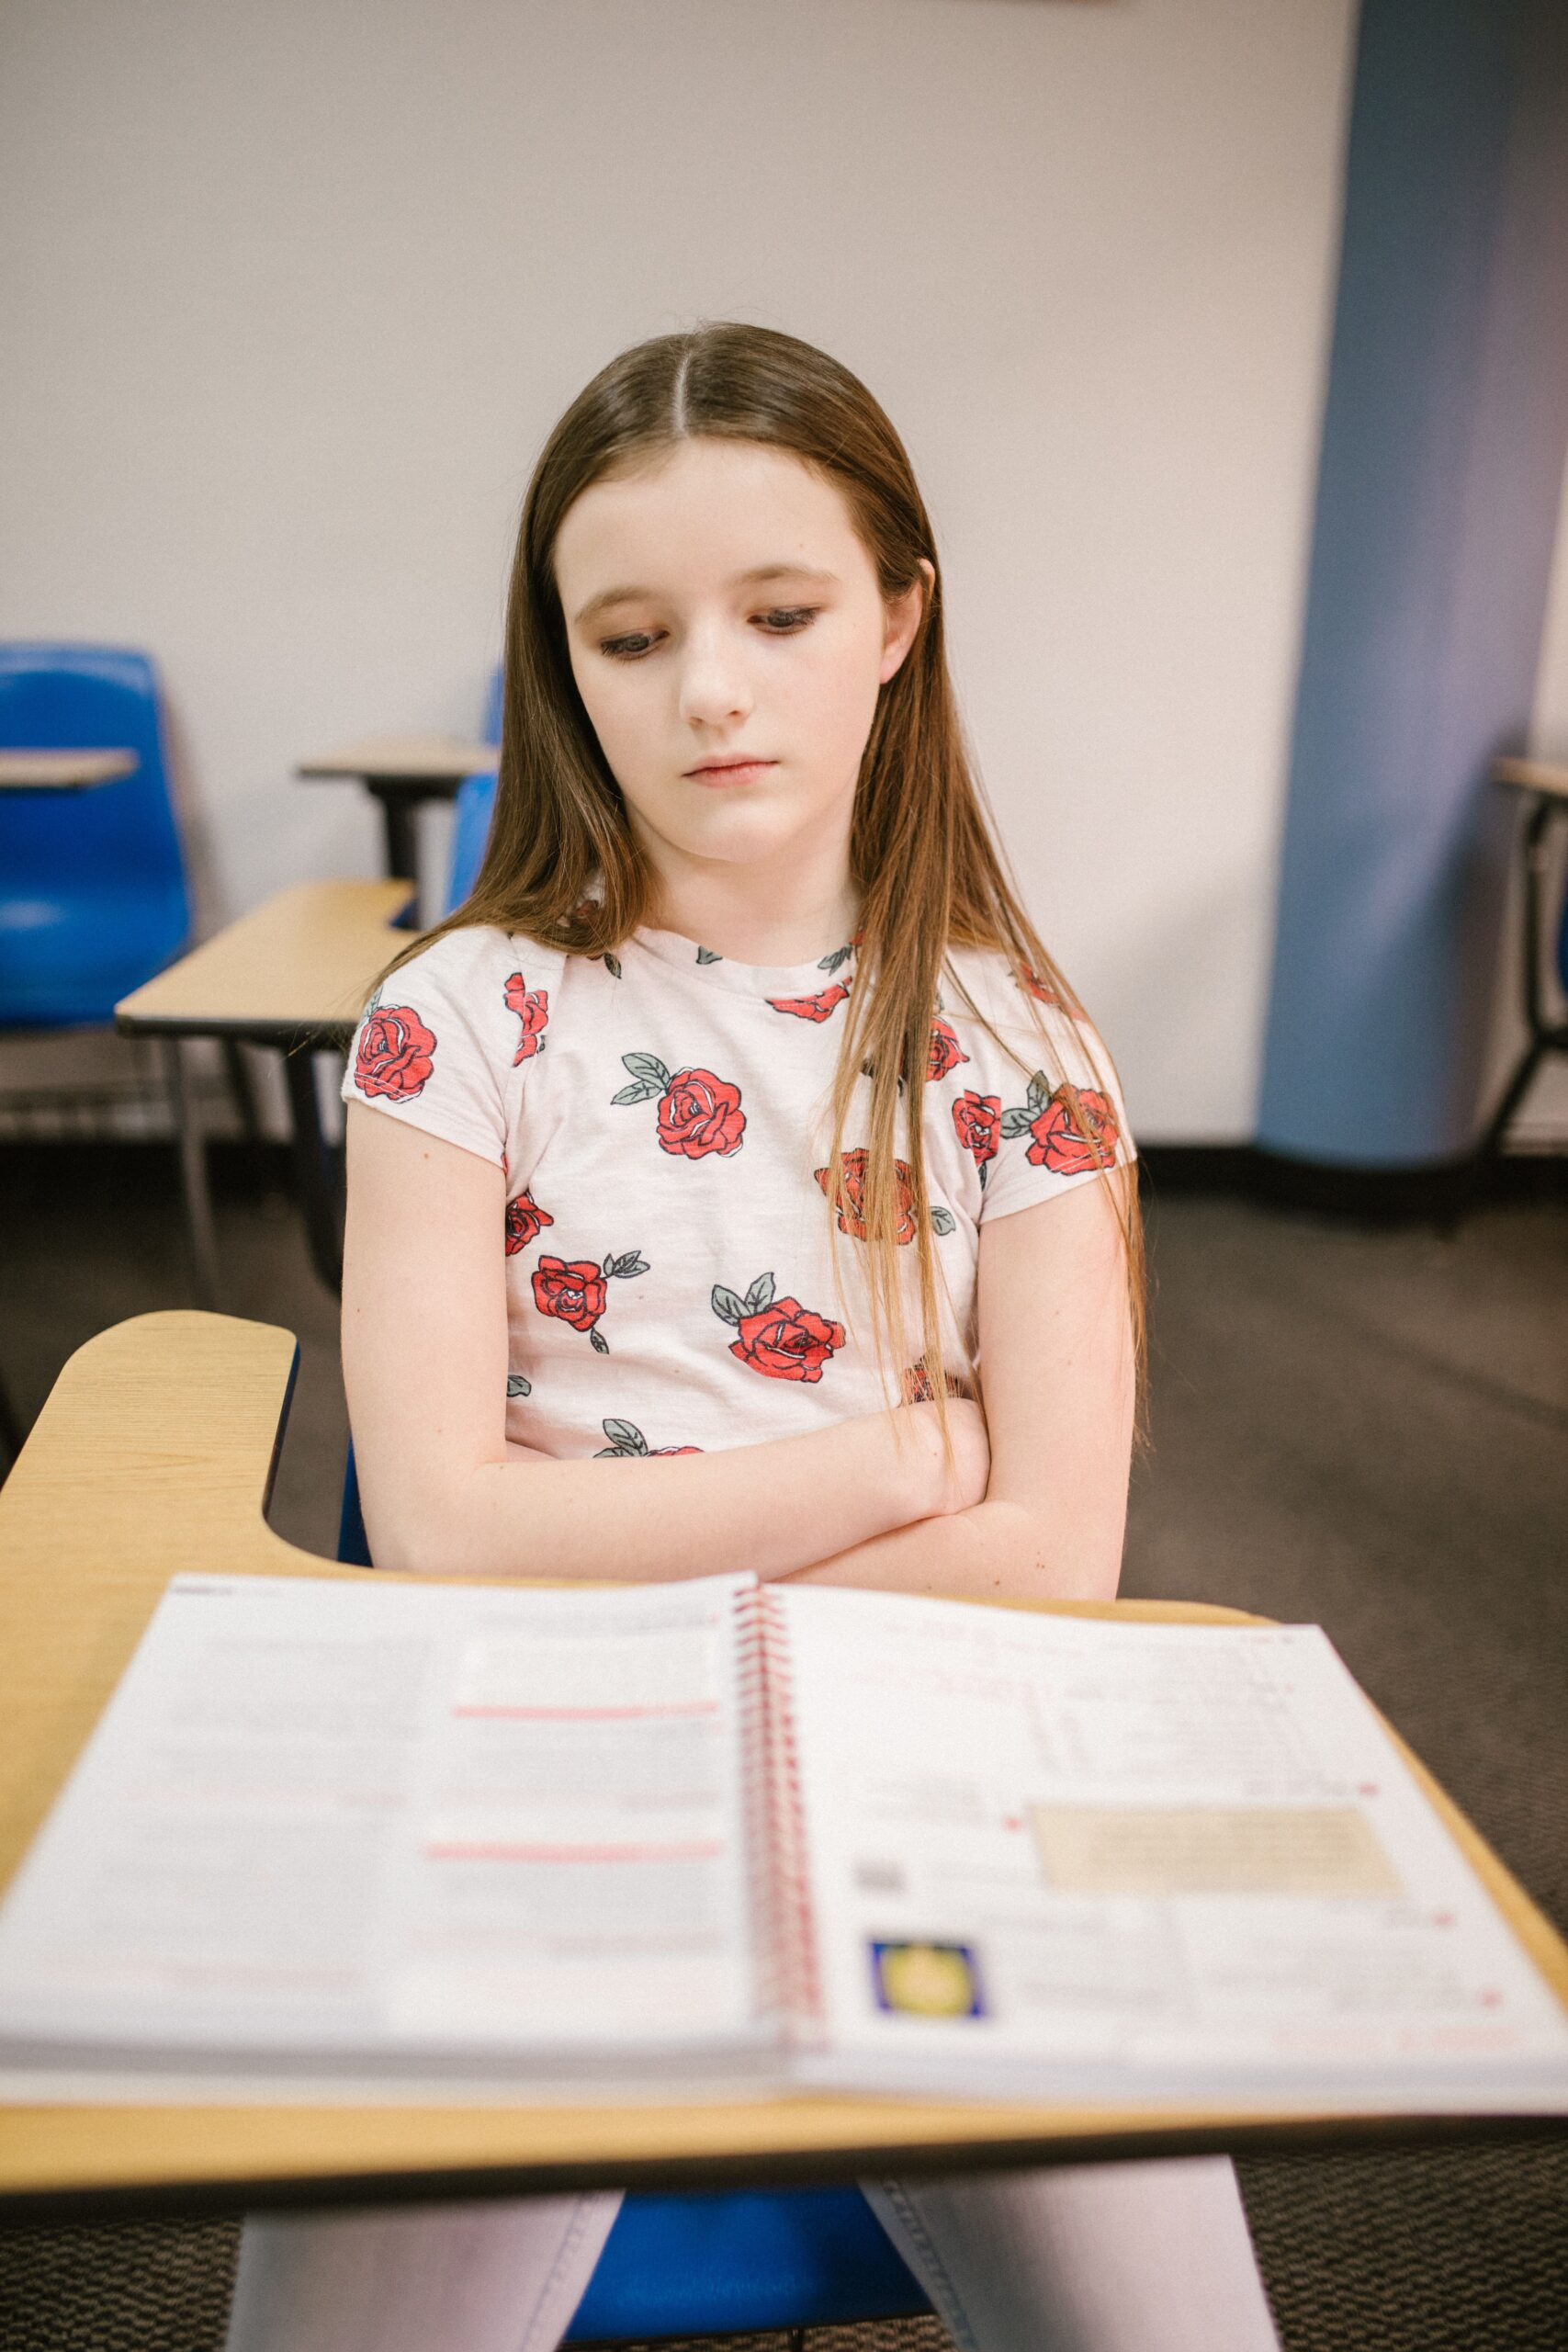 Girl sitting in desk arms folded looking down